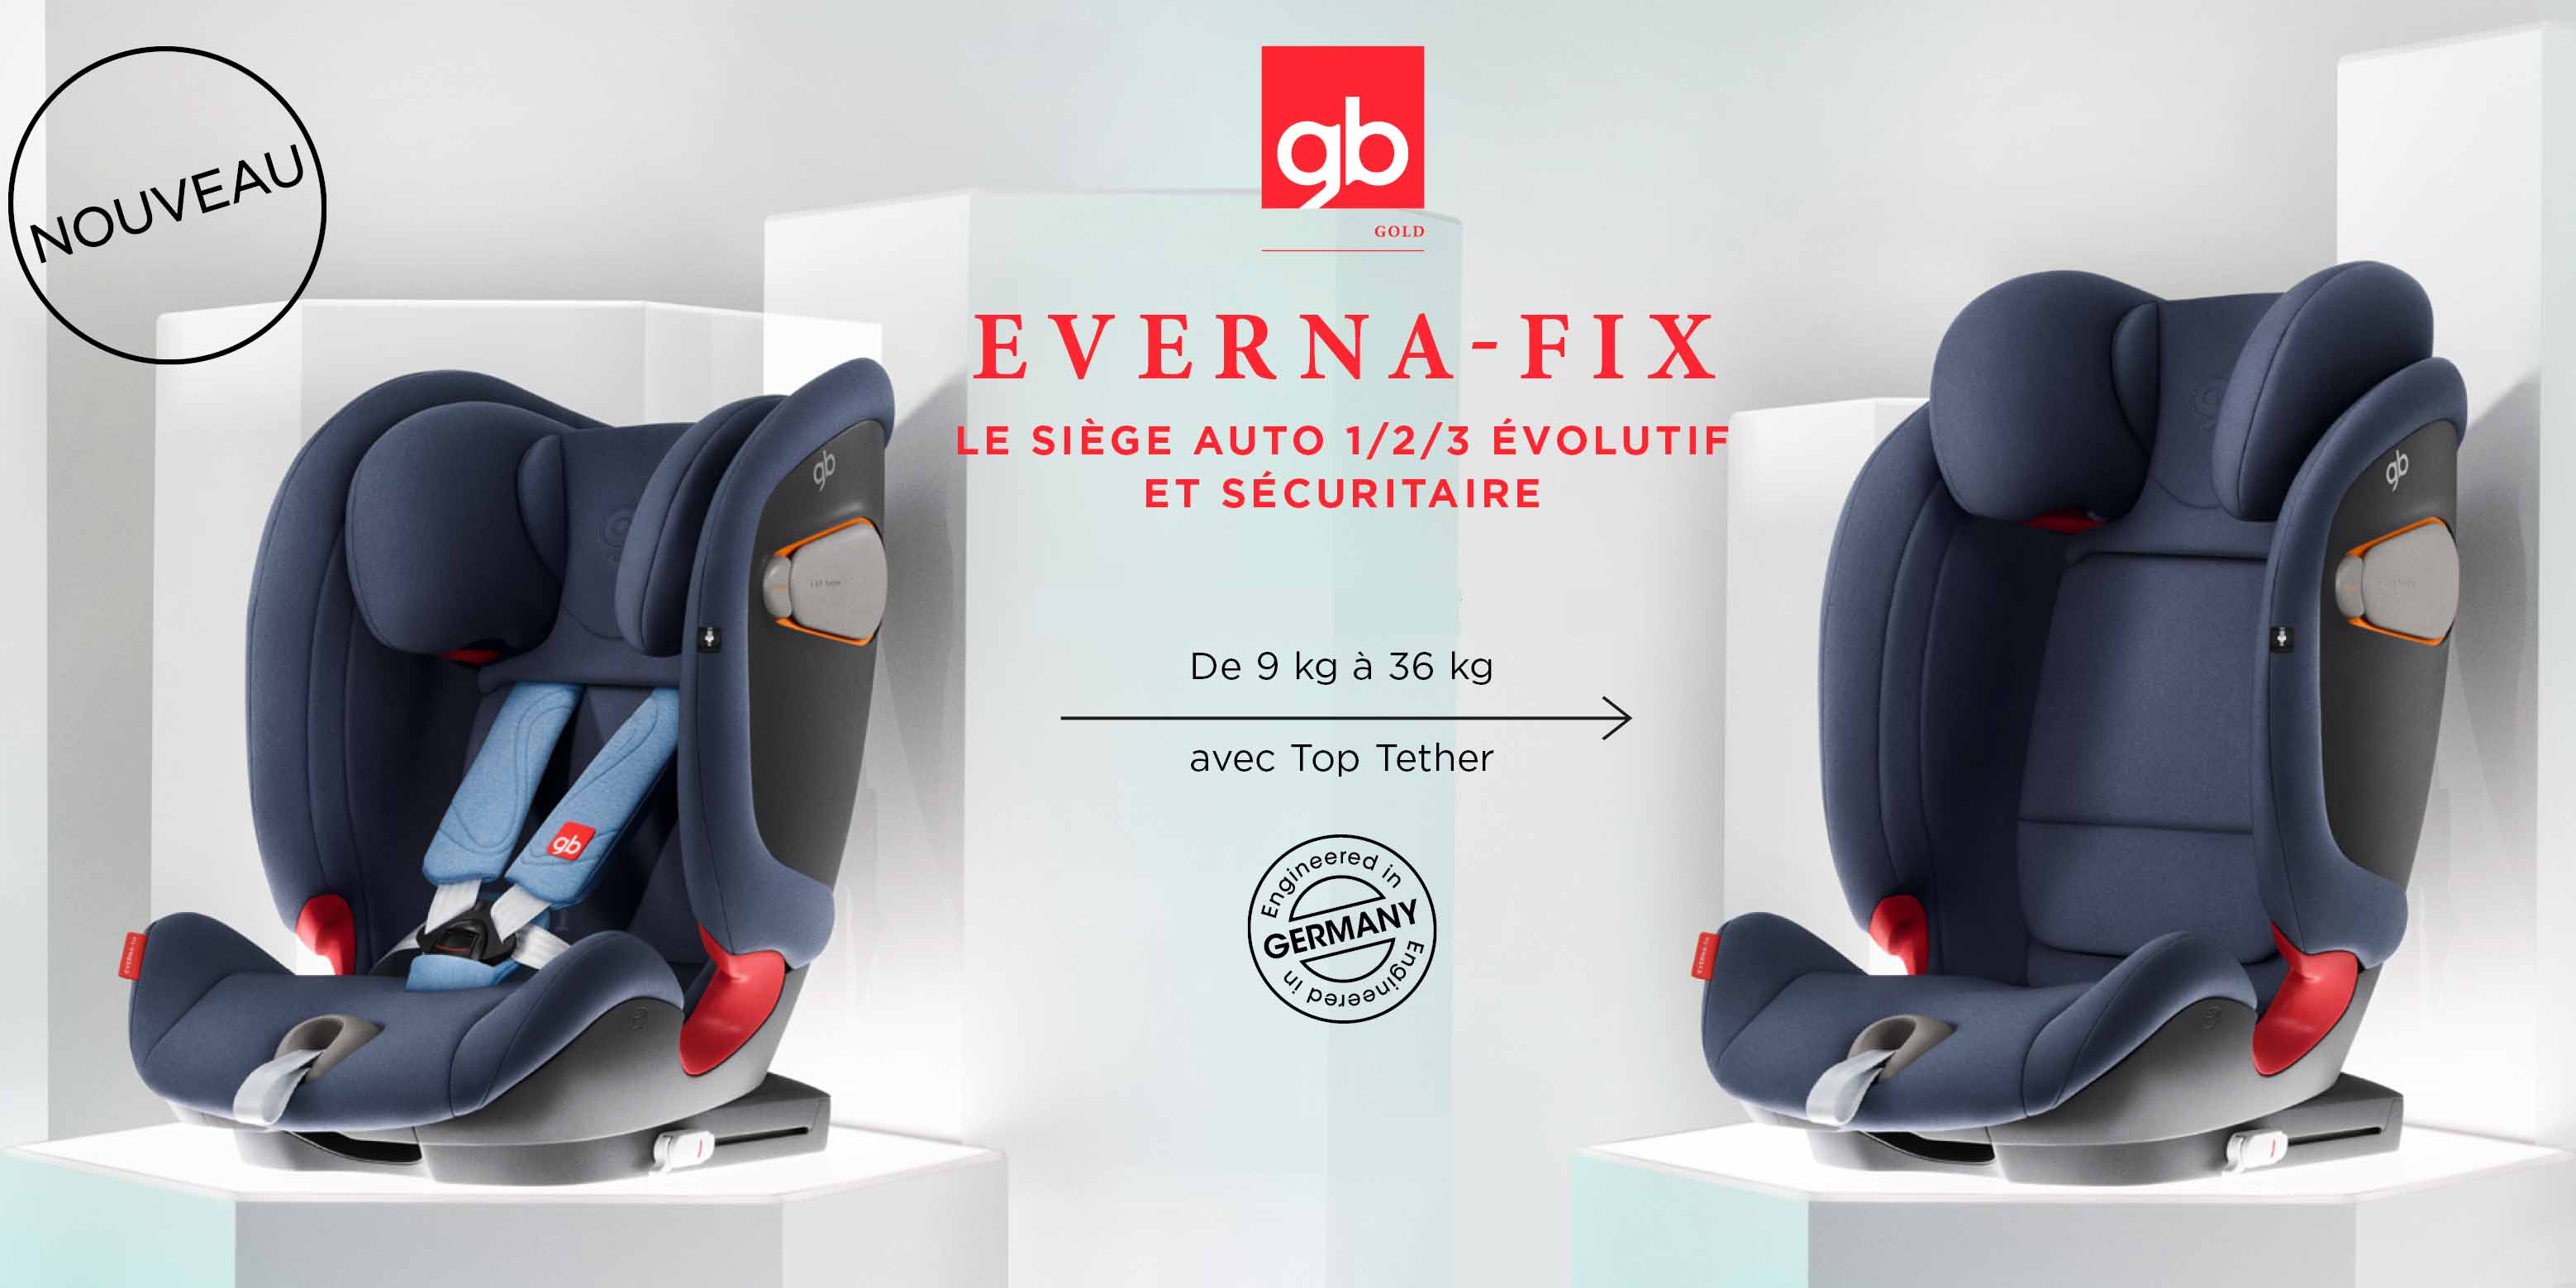 Everna-Fix